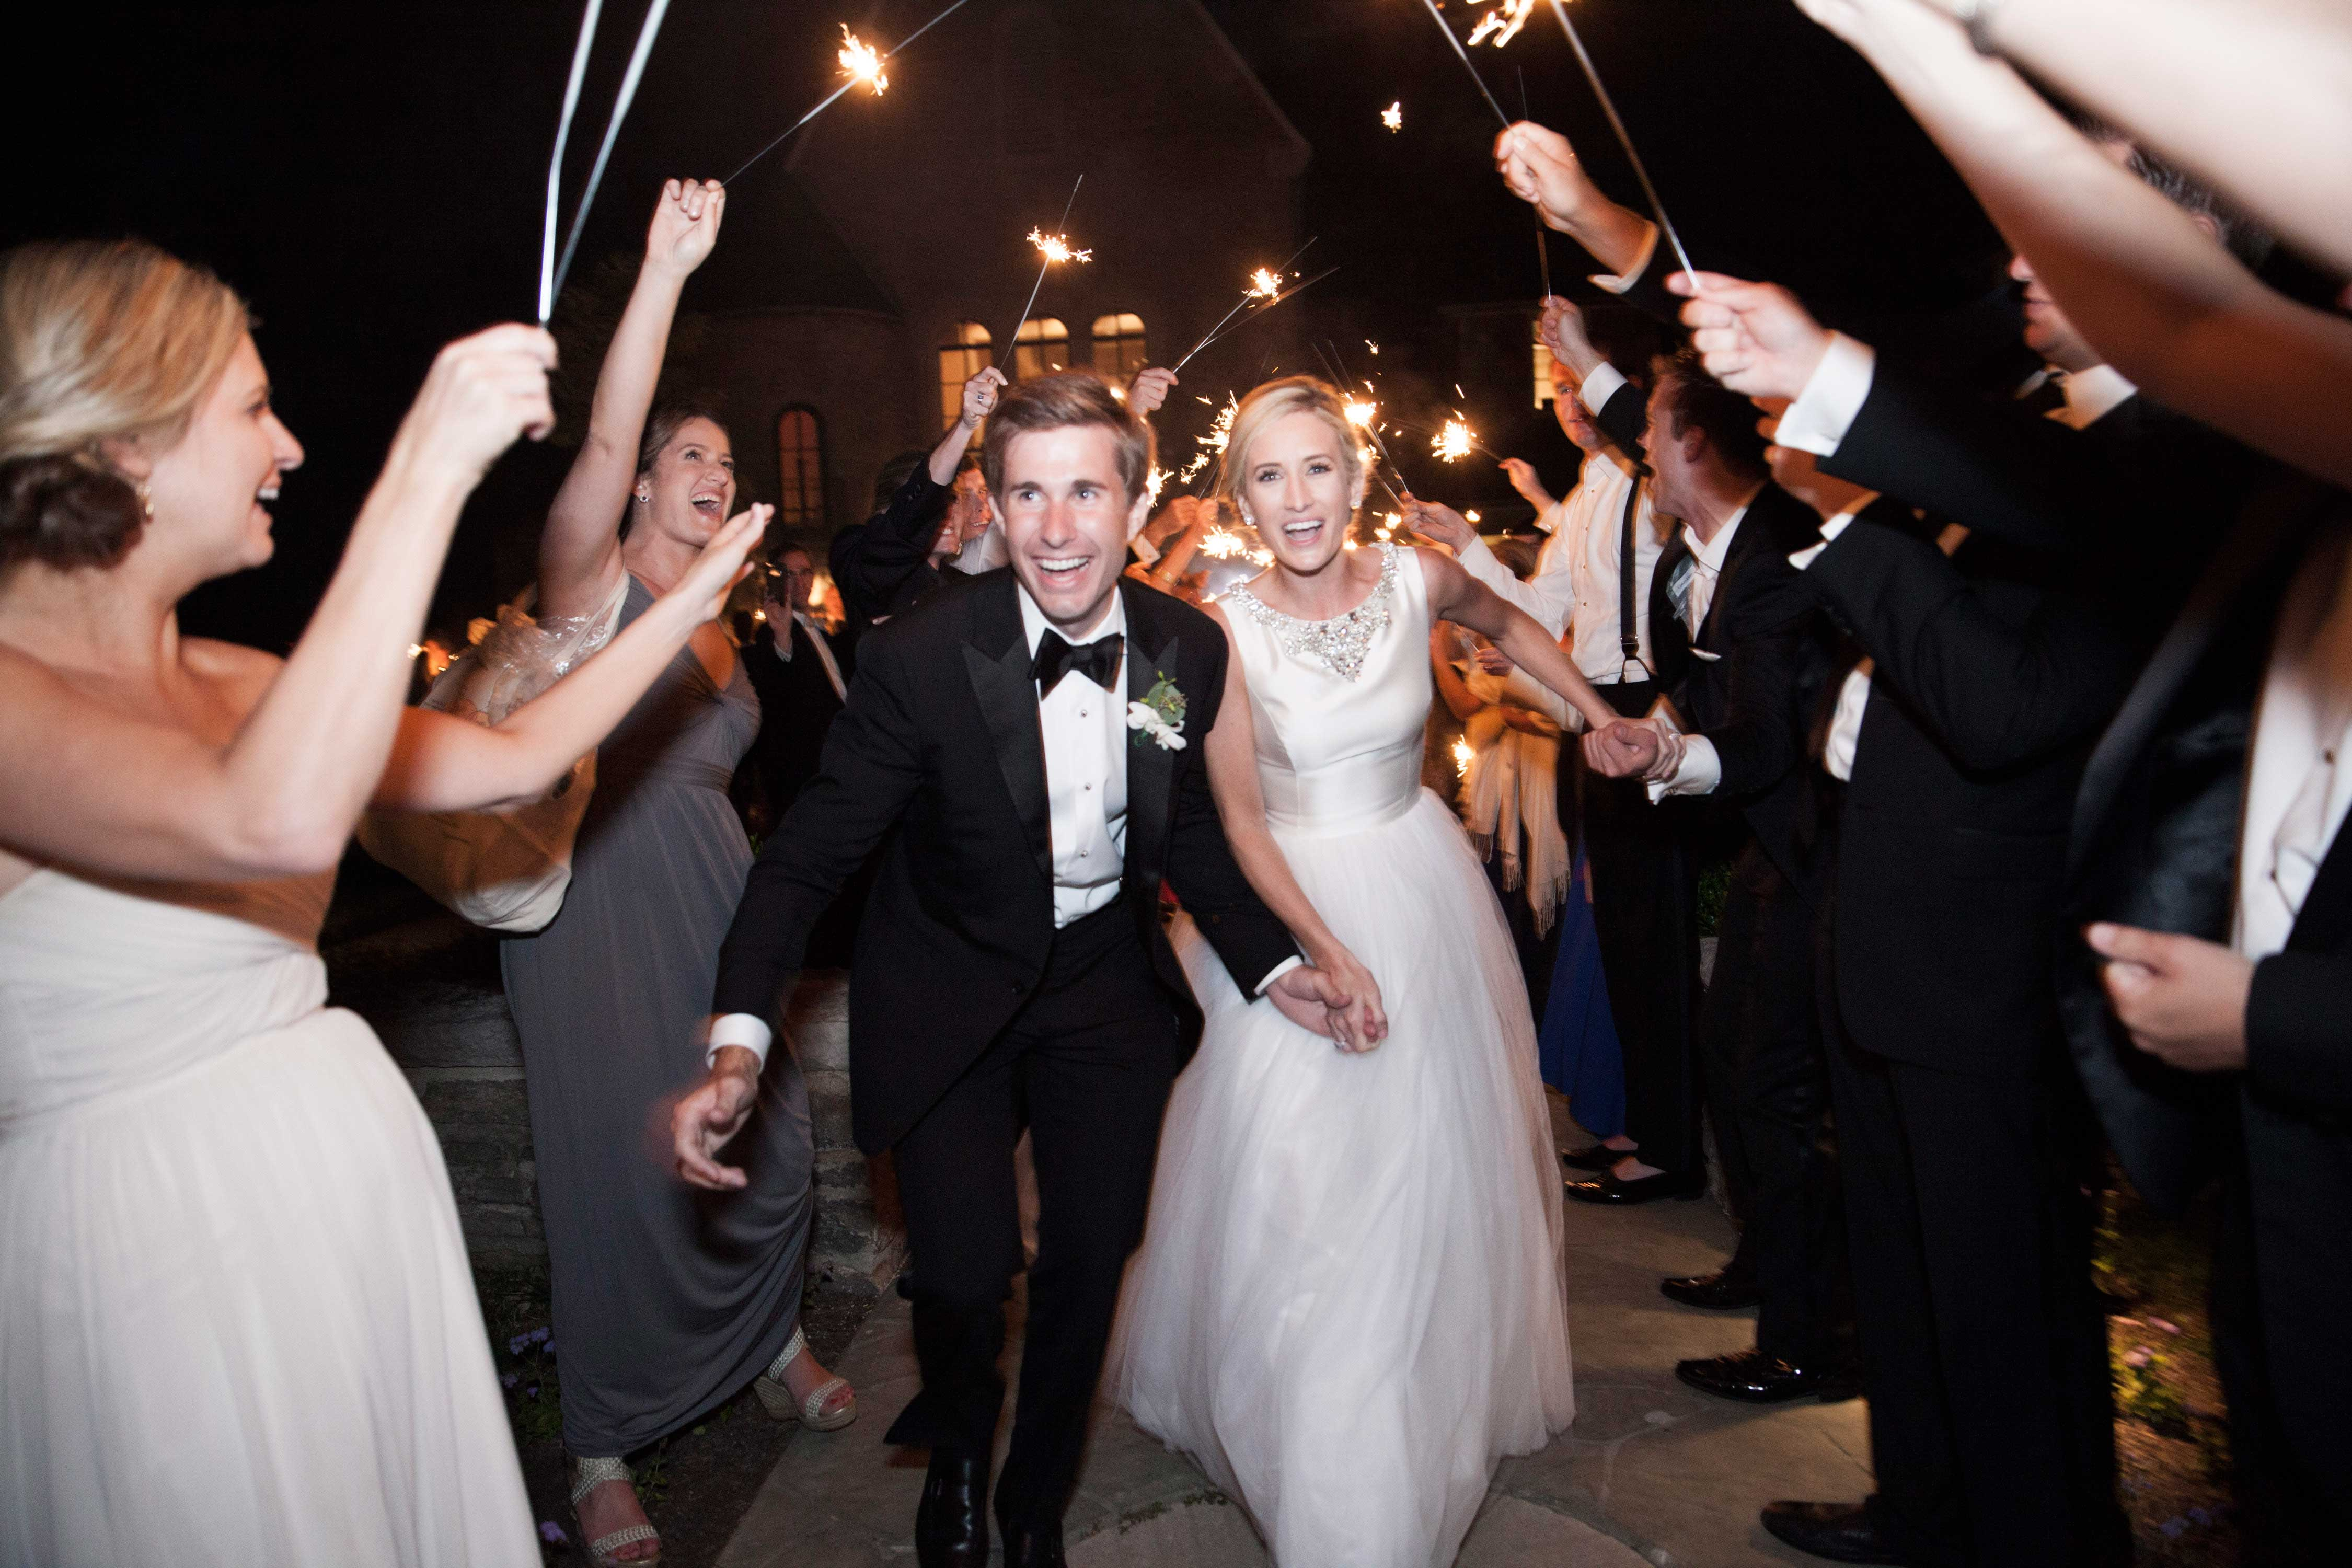 Bride and groom running through tunnel of guests holding sparklers exit